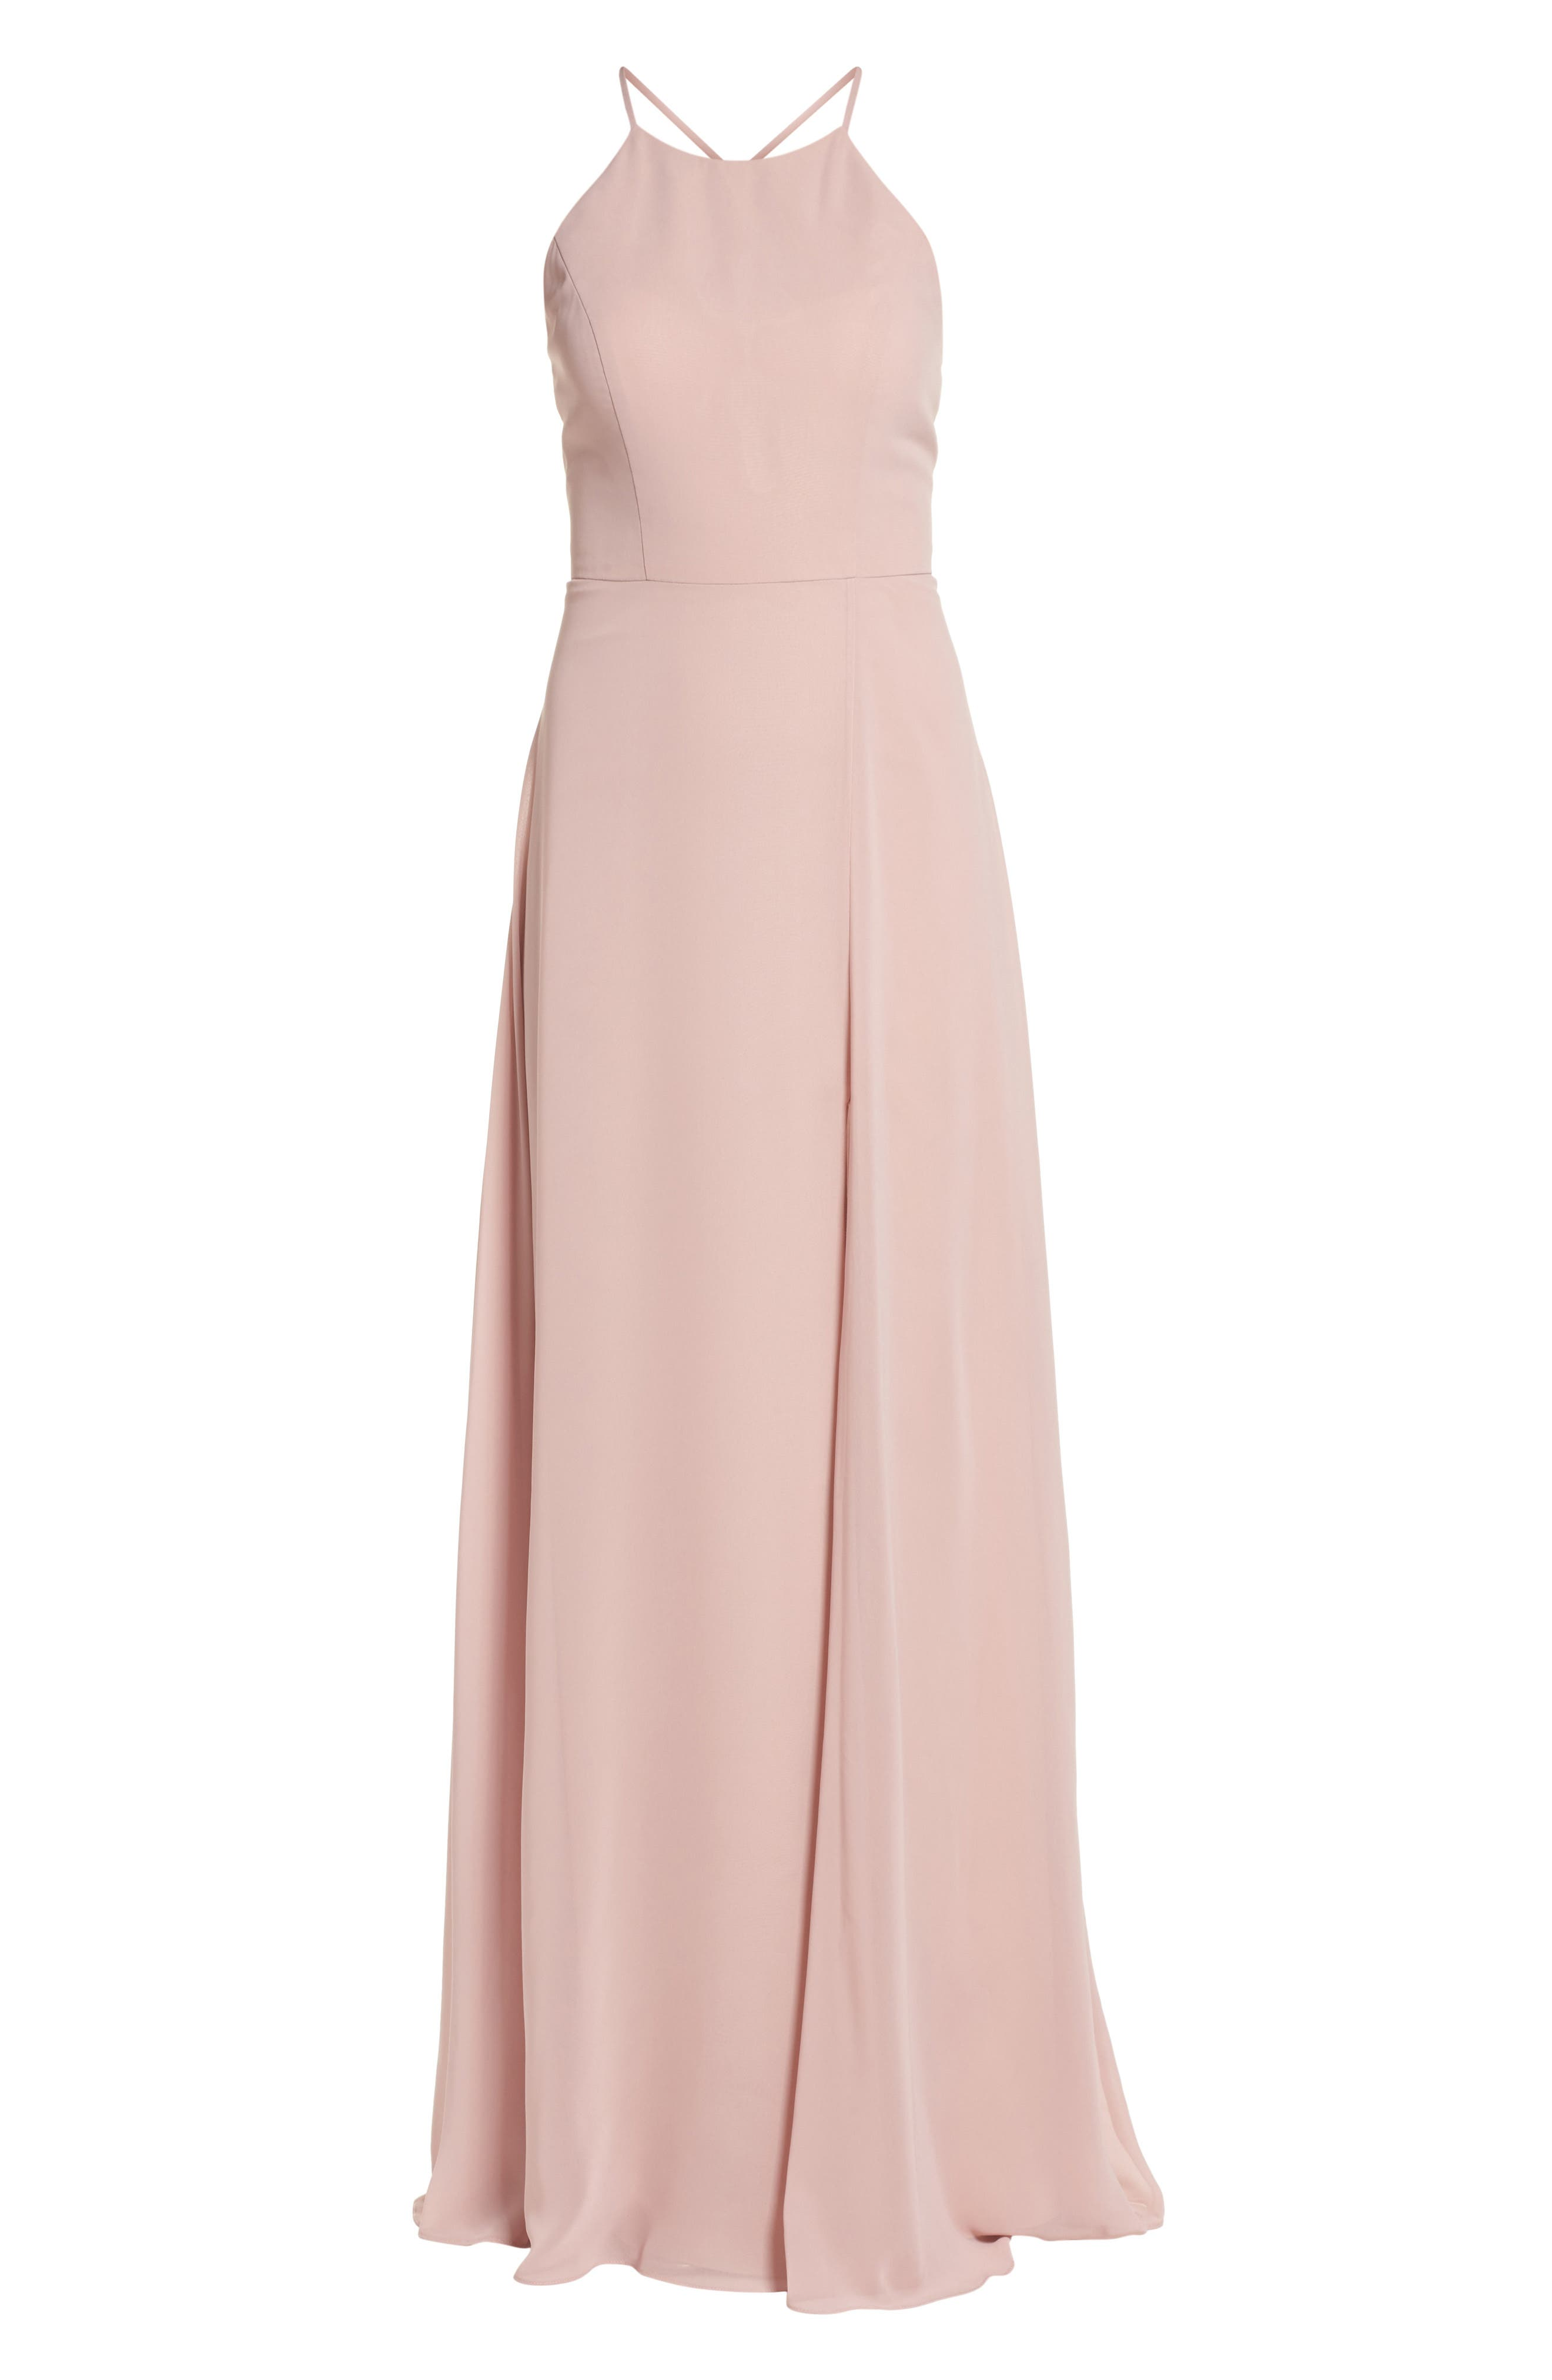 JENNY YOO, Kayla A-Line Halter Gown, Alternate thumbnail 7, color, WHIPPED APRICOT